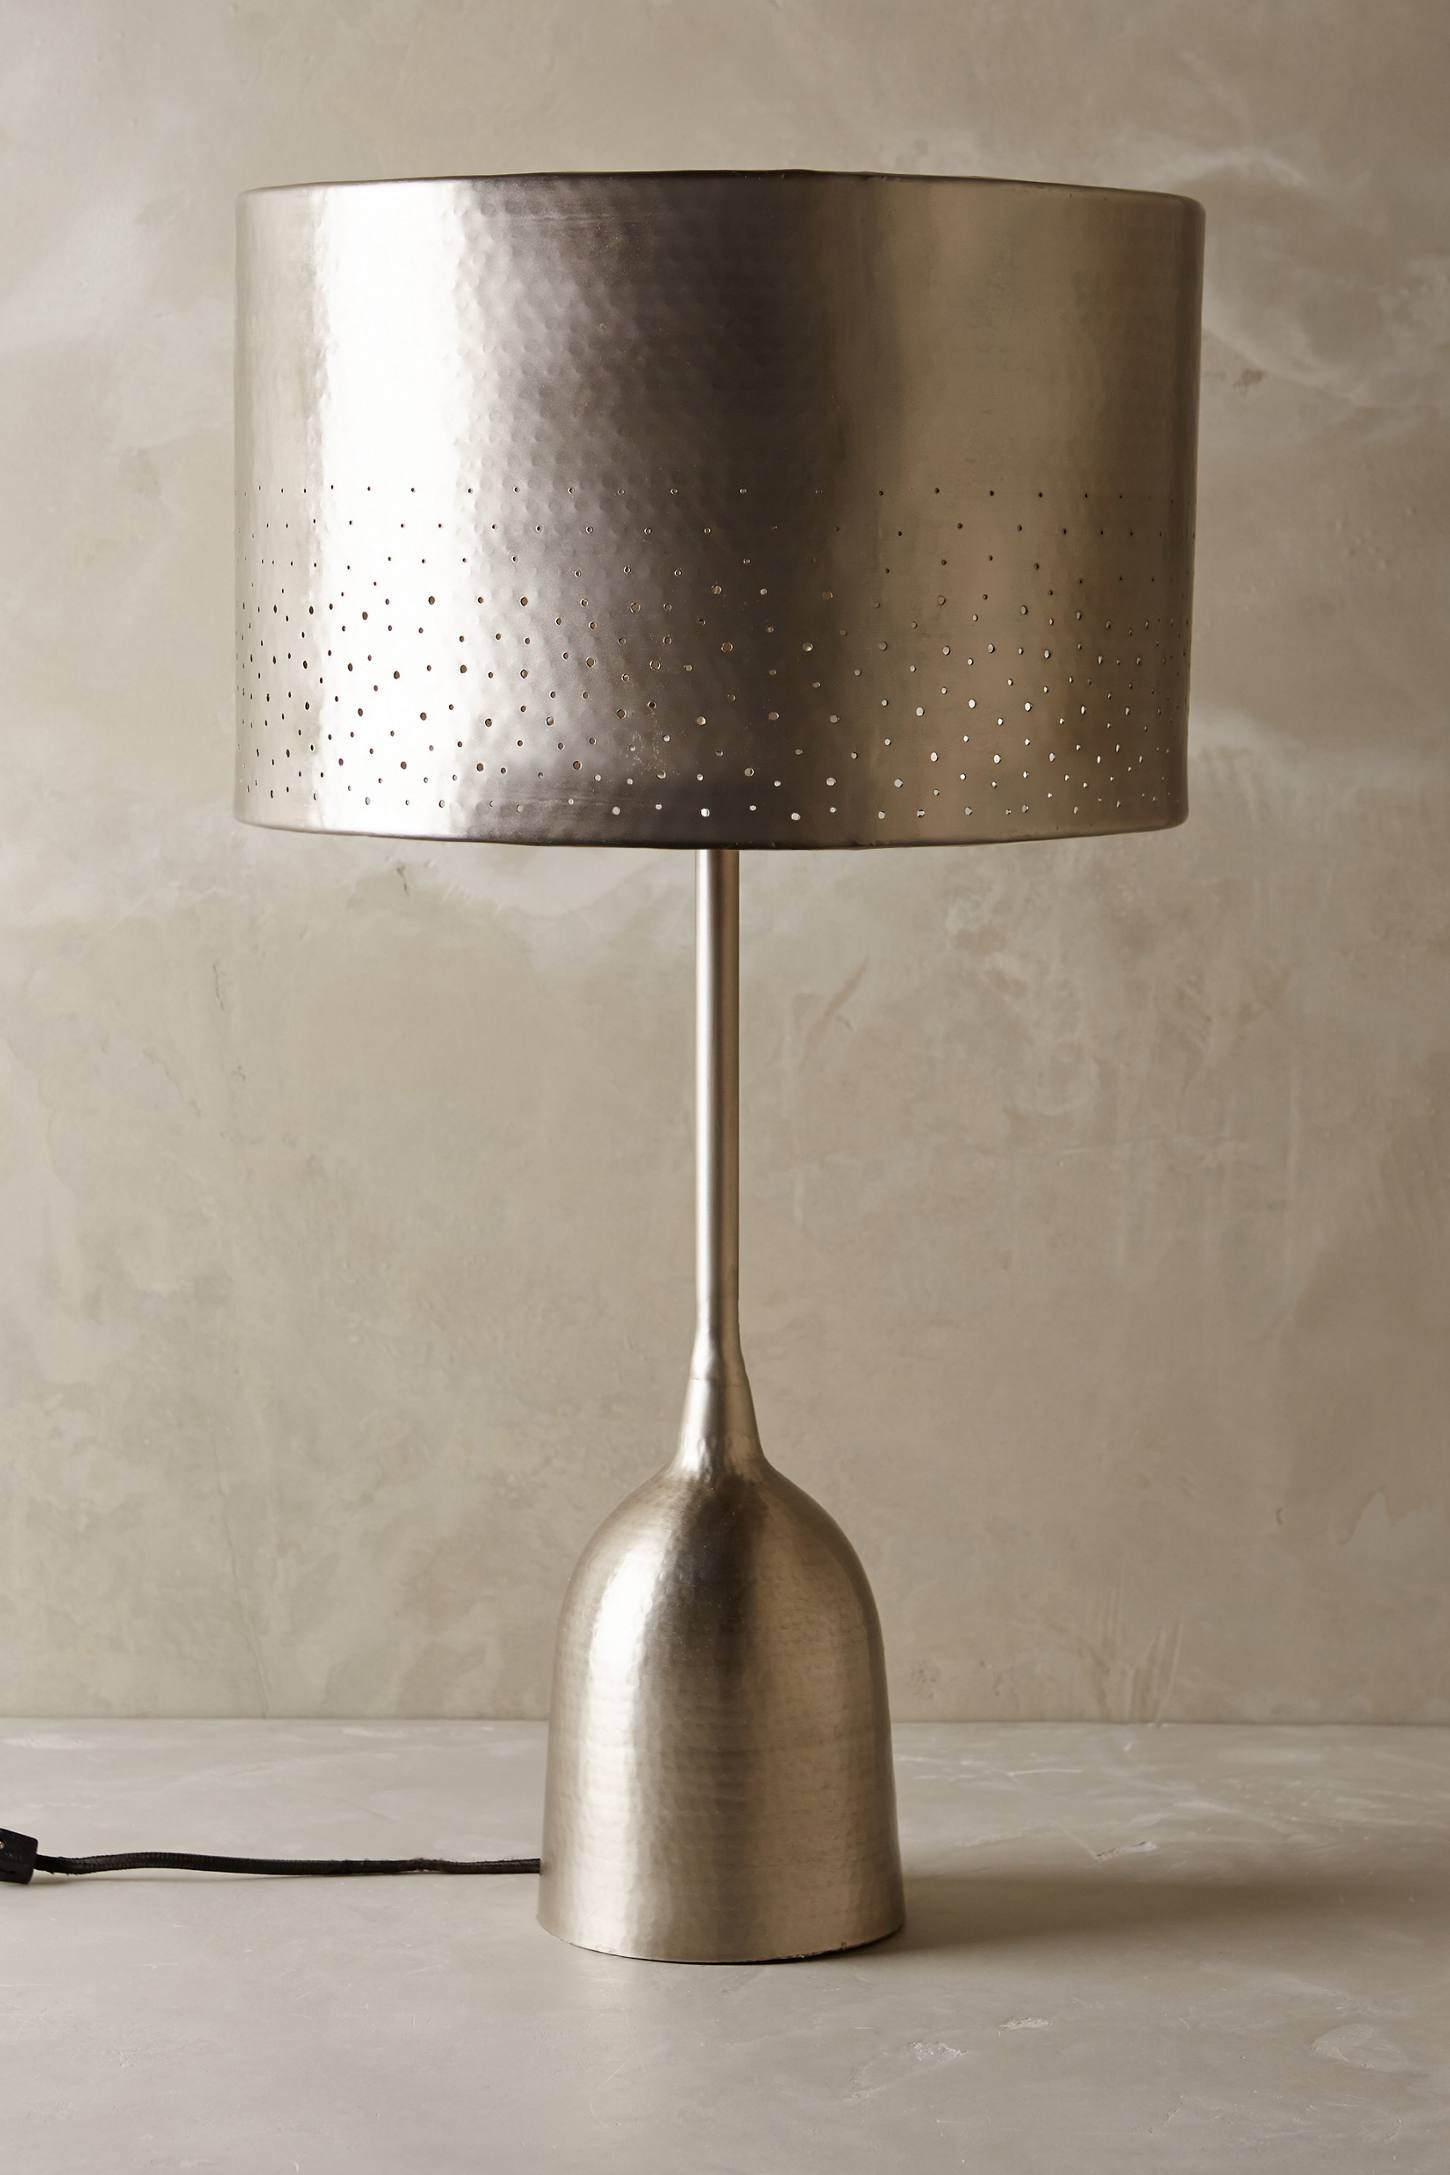 Slide View: 1: Tincelle Dot Table Lamp Ensemble